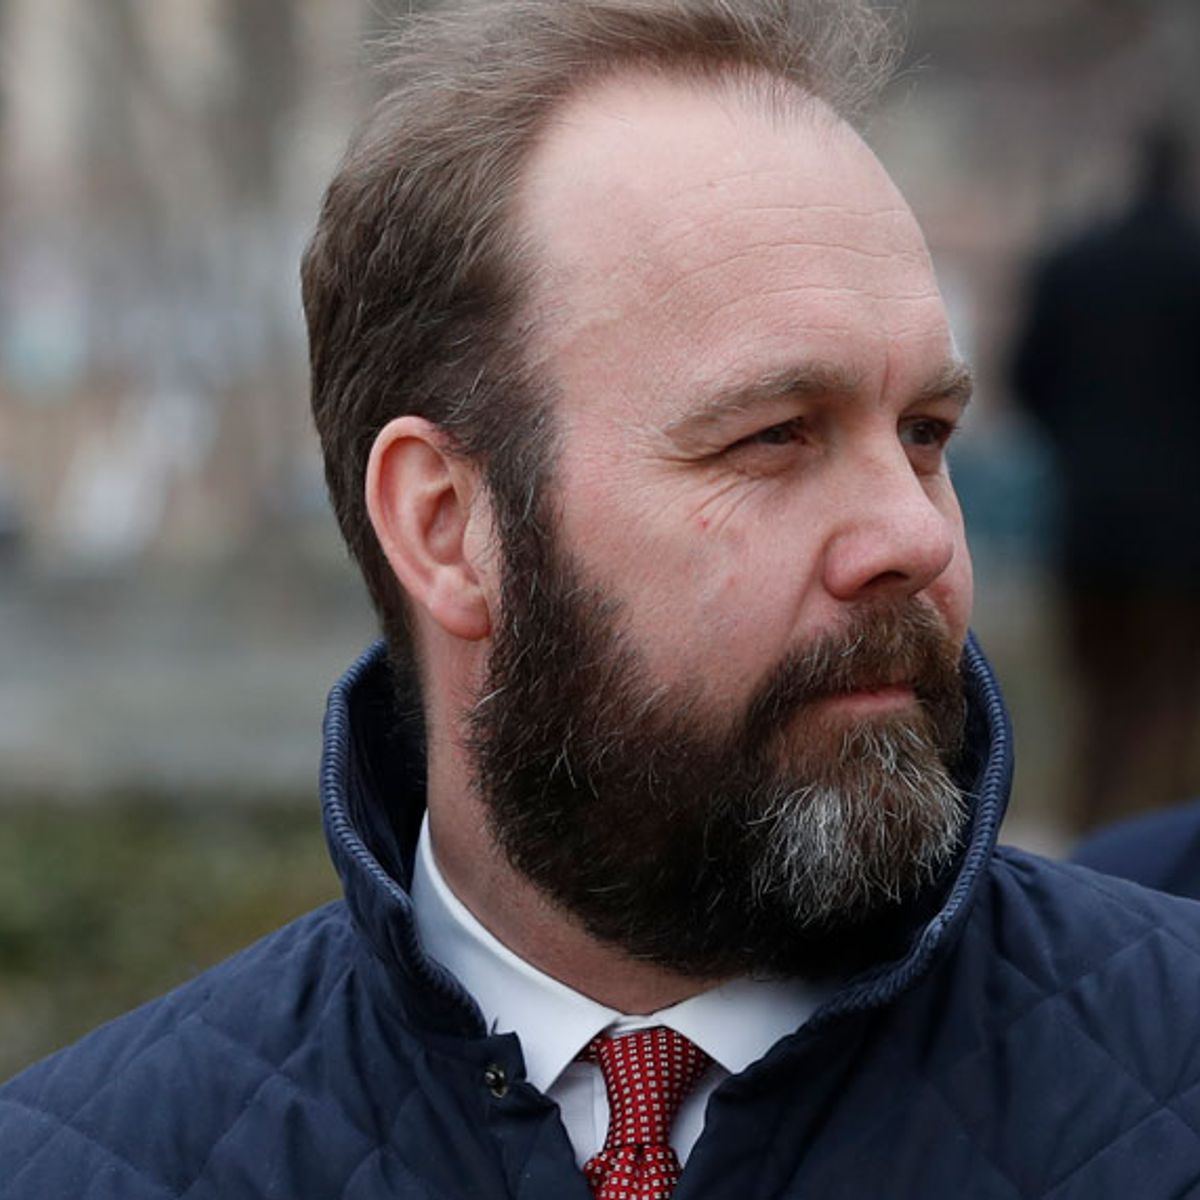 Convicted former Trump aide Rick Gates was offered cash to stonewall Mueller probe: prosecutors